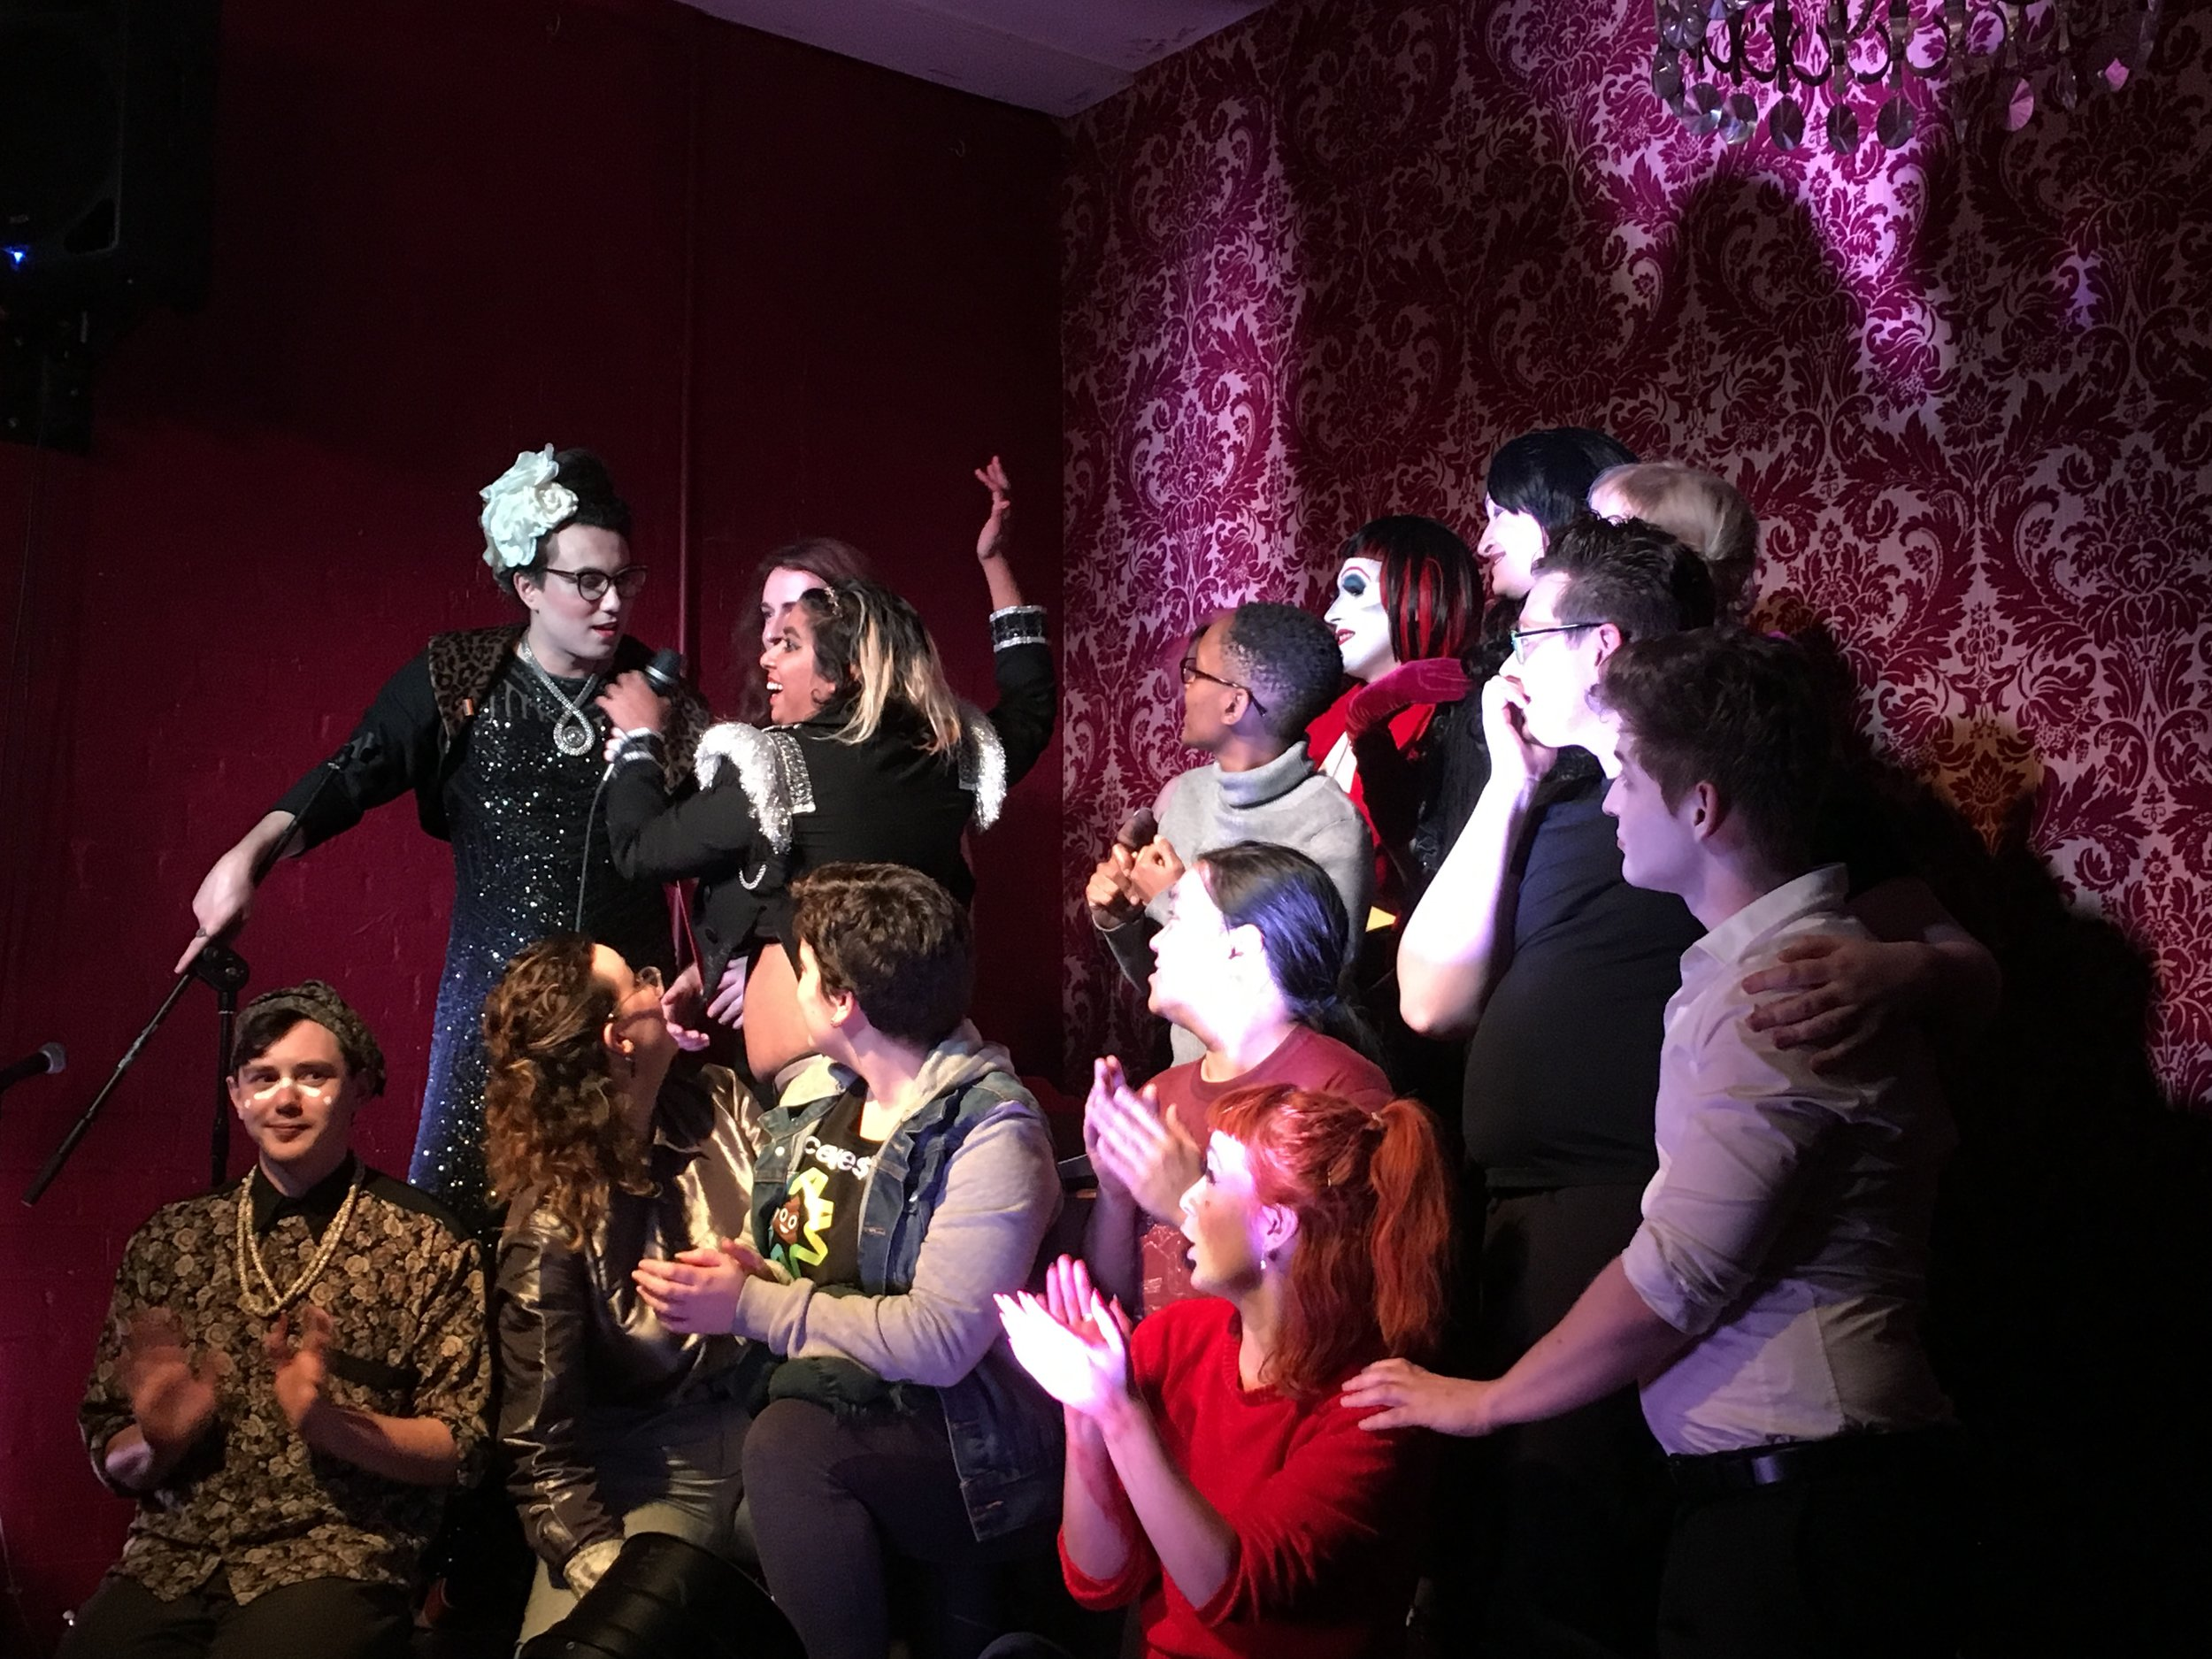 Curtain Call [Magic Happens Fundraiser at Hares and Hyenas 2018] by Theodore Murray